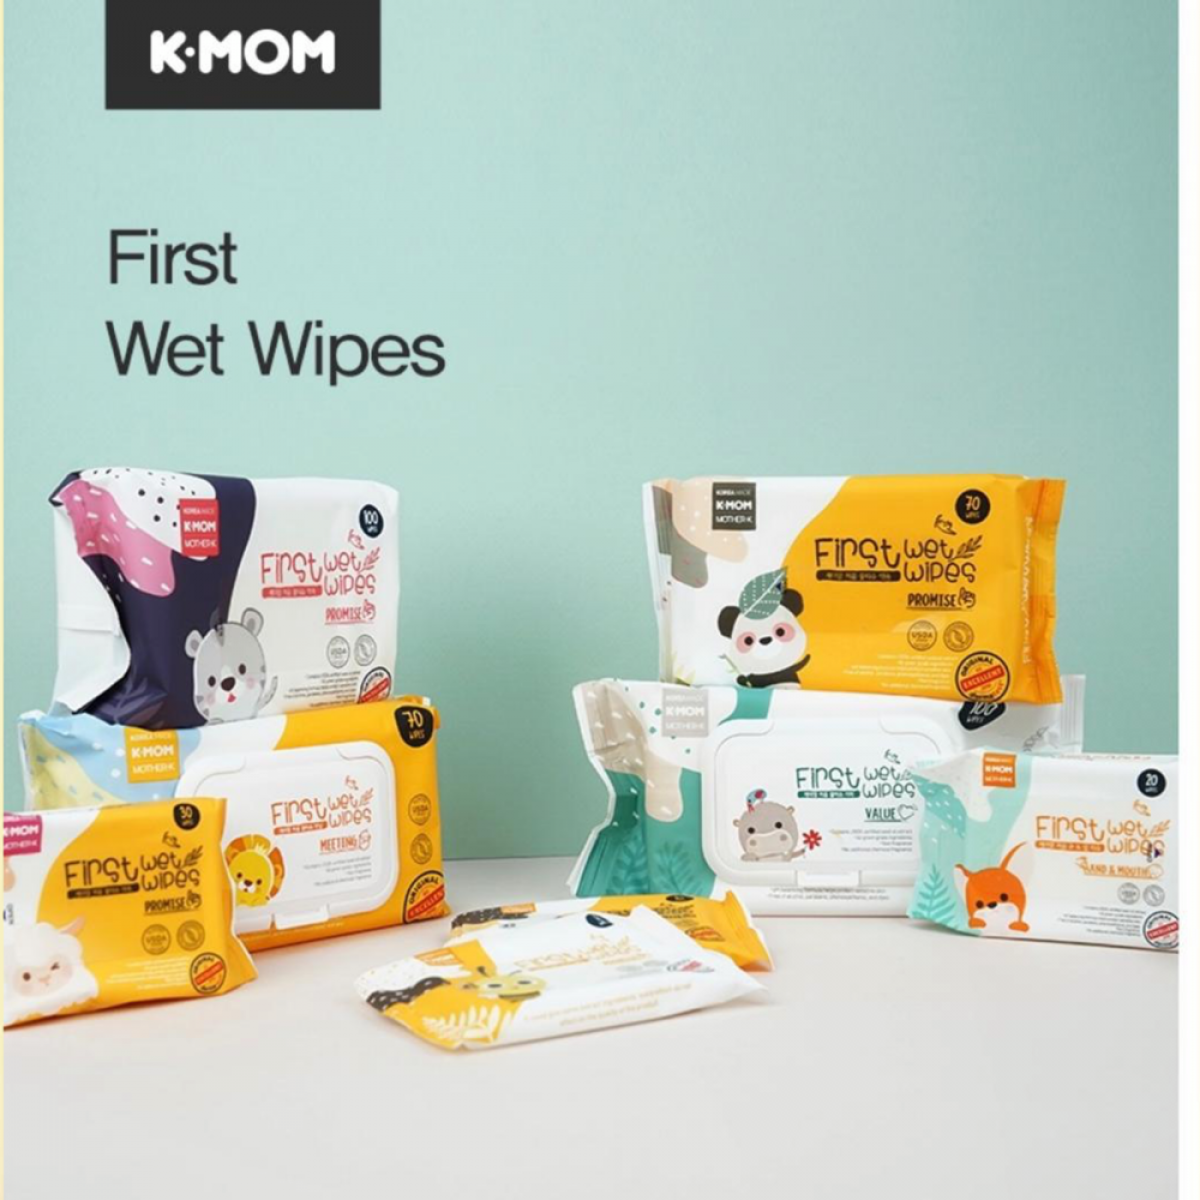 NEW K-MOM First Wet Wipes Promise - 30pcs